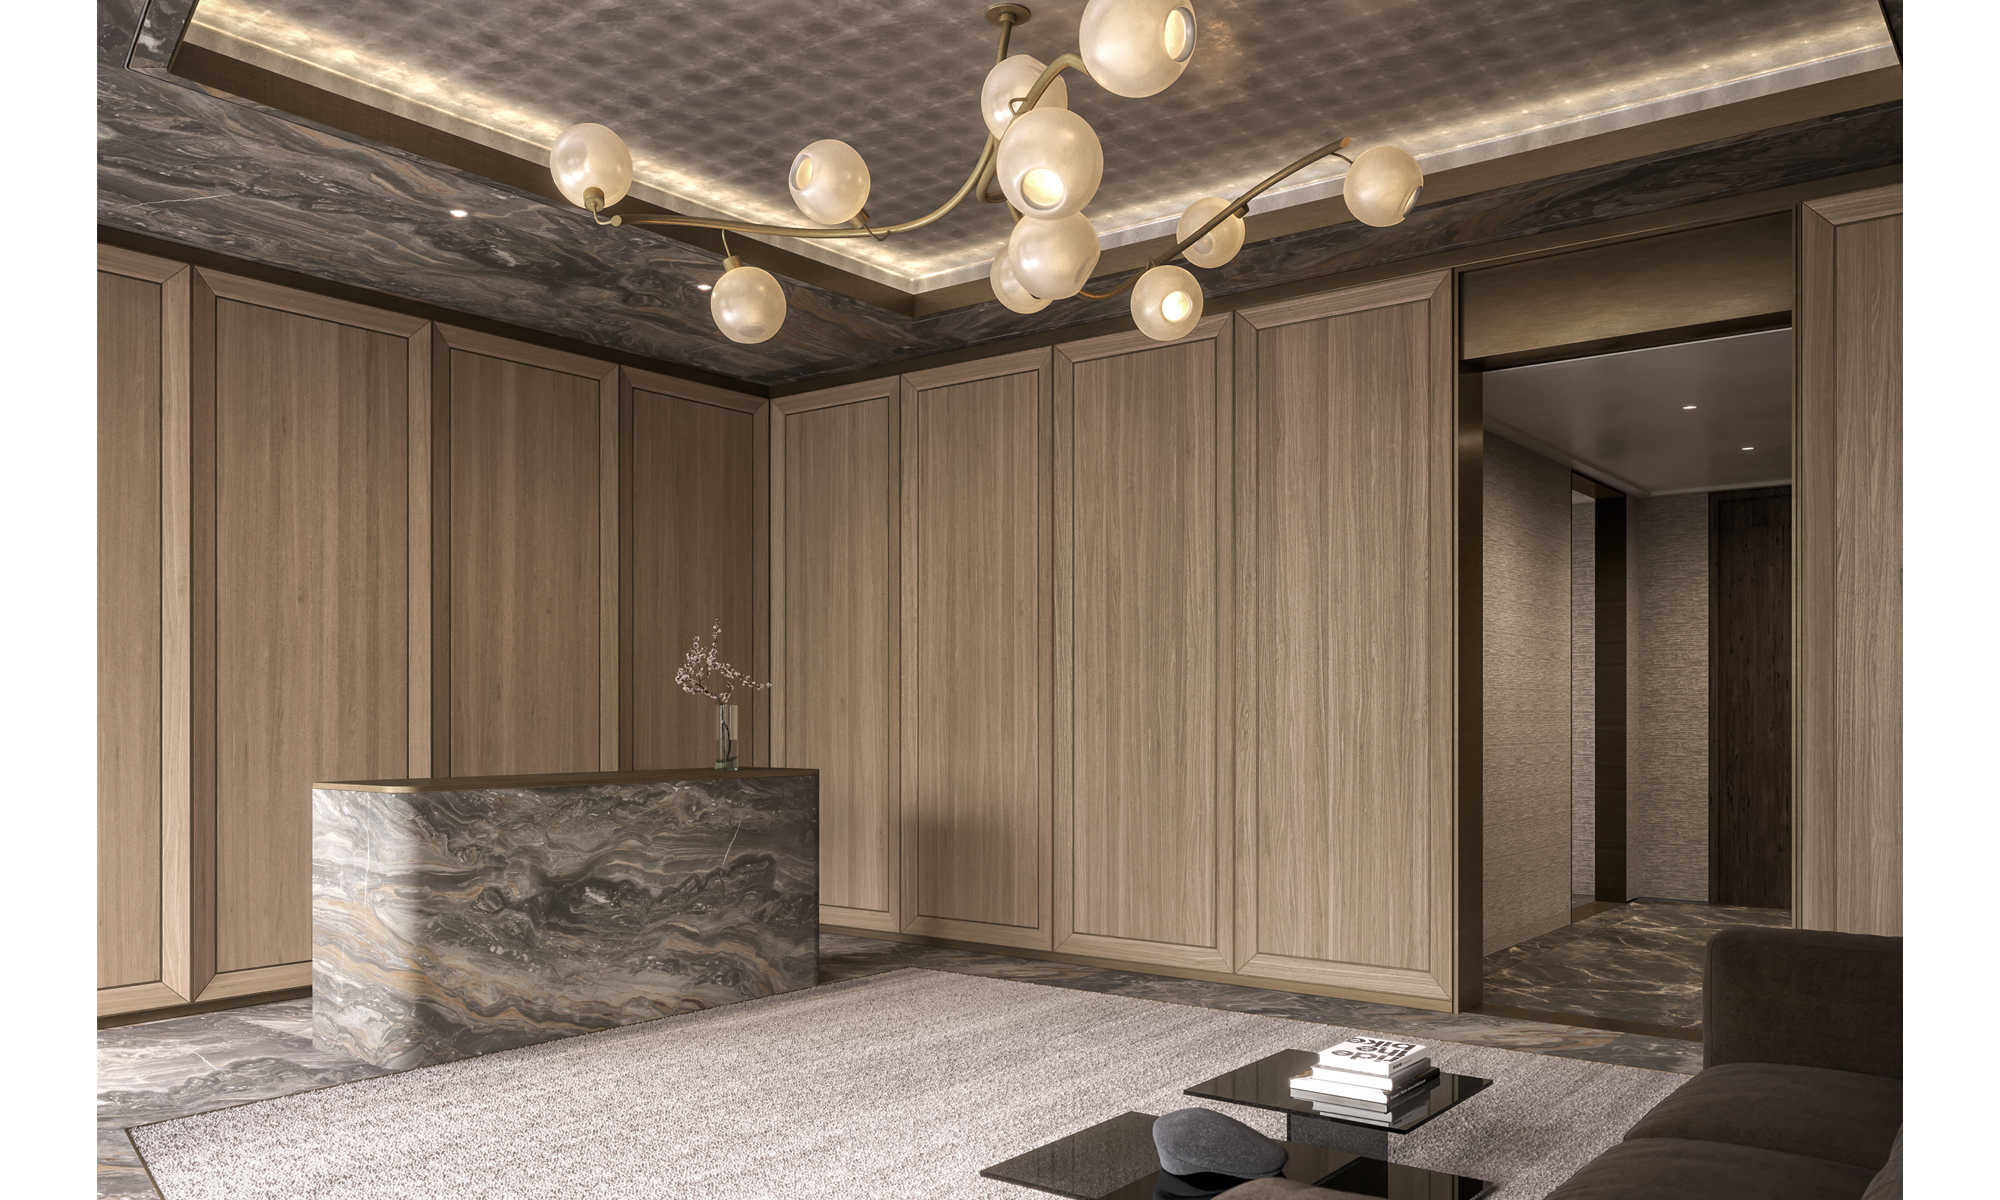 Artist's impression of the 401 West entrance lobby and concierge desk.